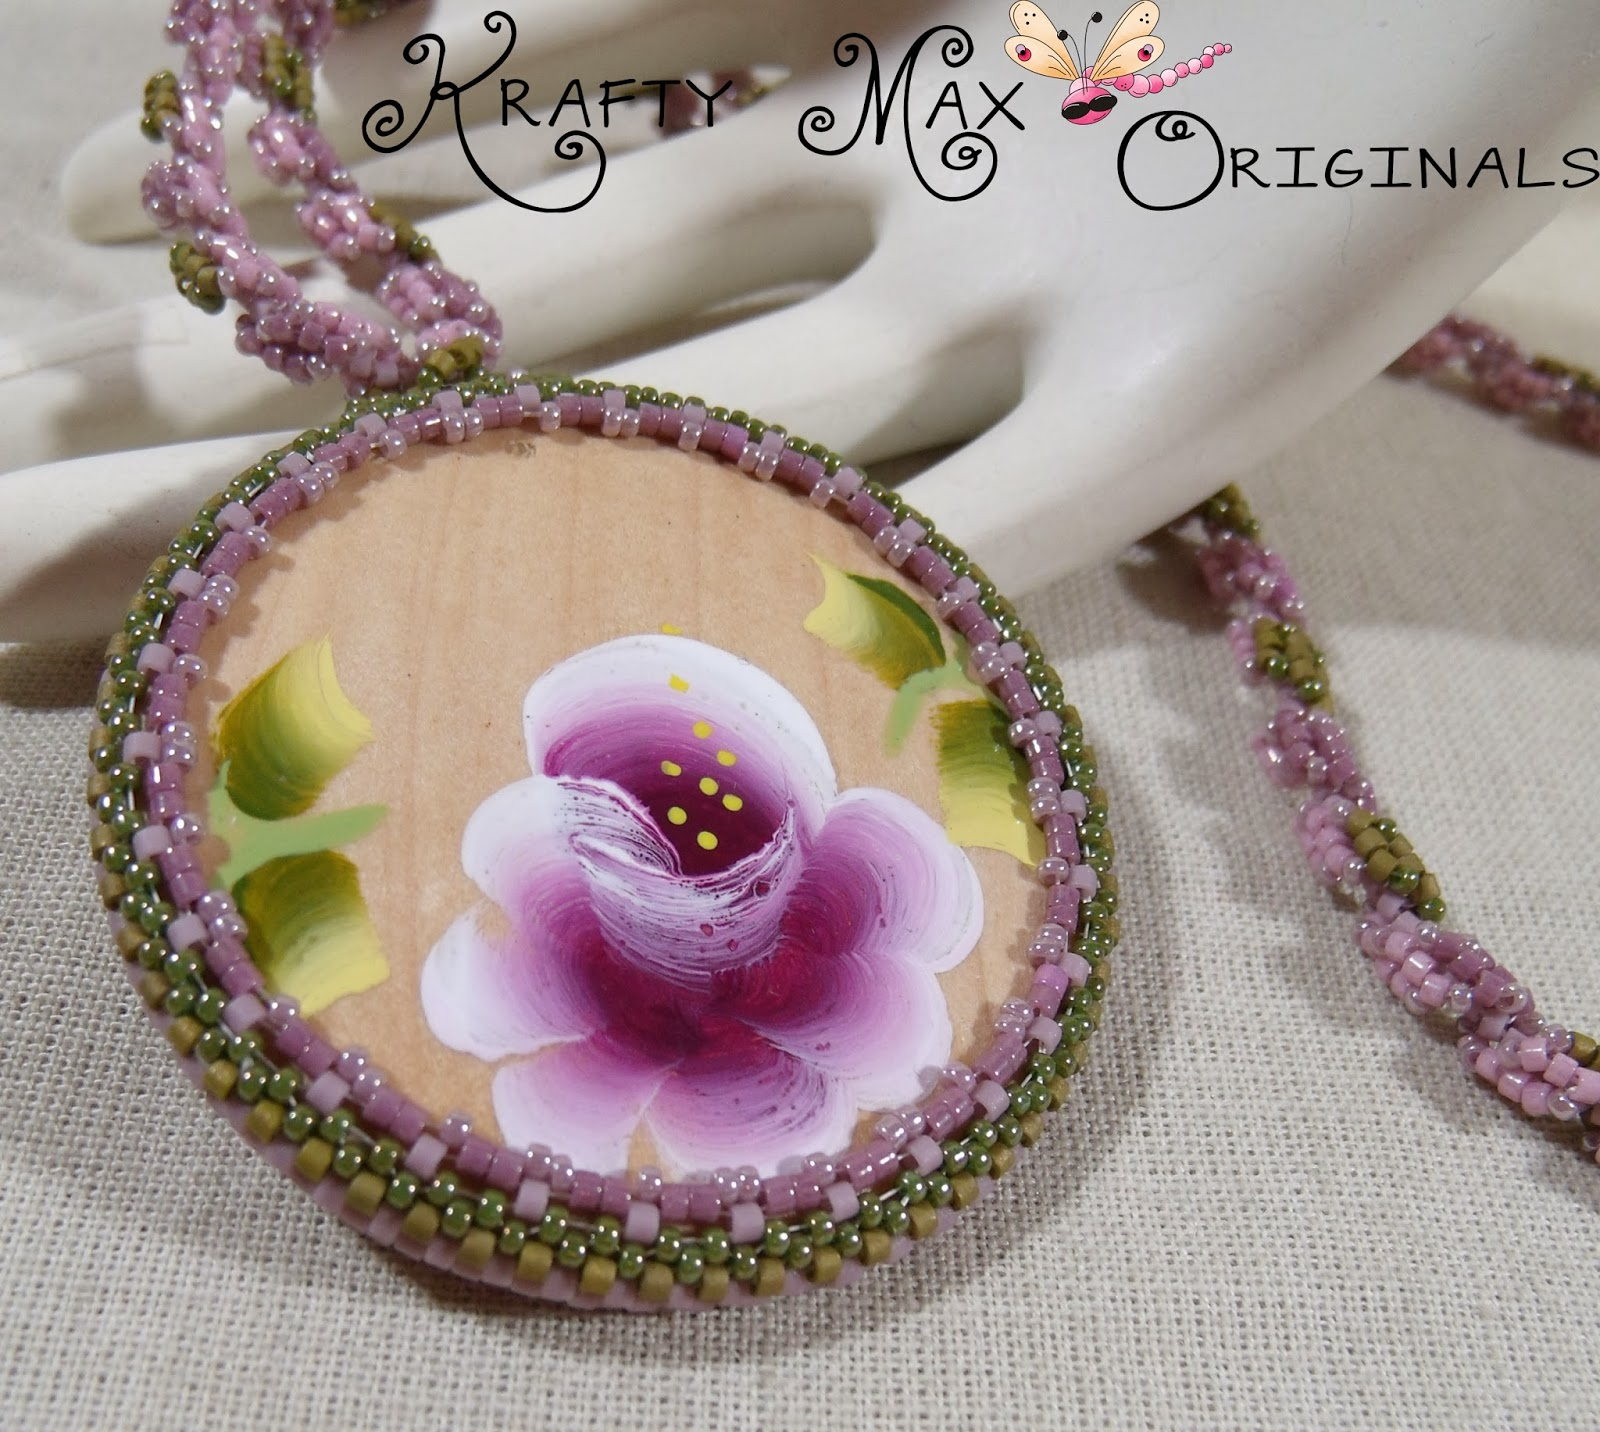 http://www.artfire.com/ext/shop/product_view/KraftyMax/8085332/lorraine_lee_rose_beadwoven_necklace_a_krafty_max_original_design/handmade/jewelry/necklaces/beadwoven